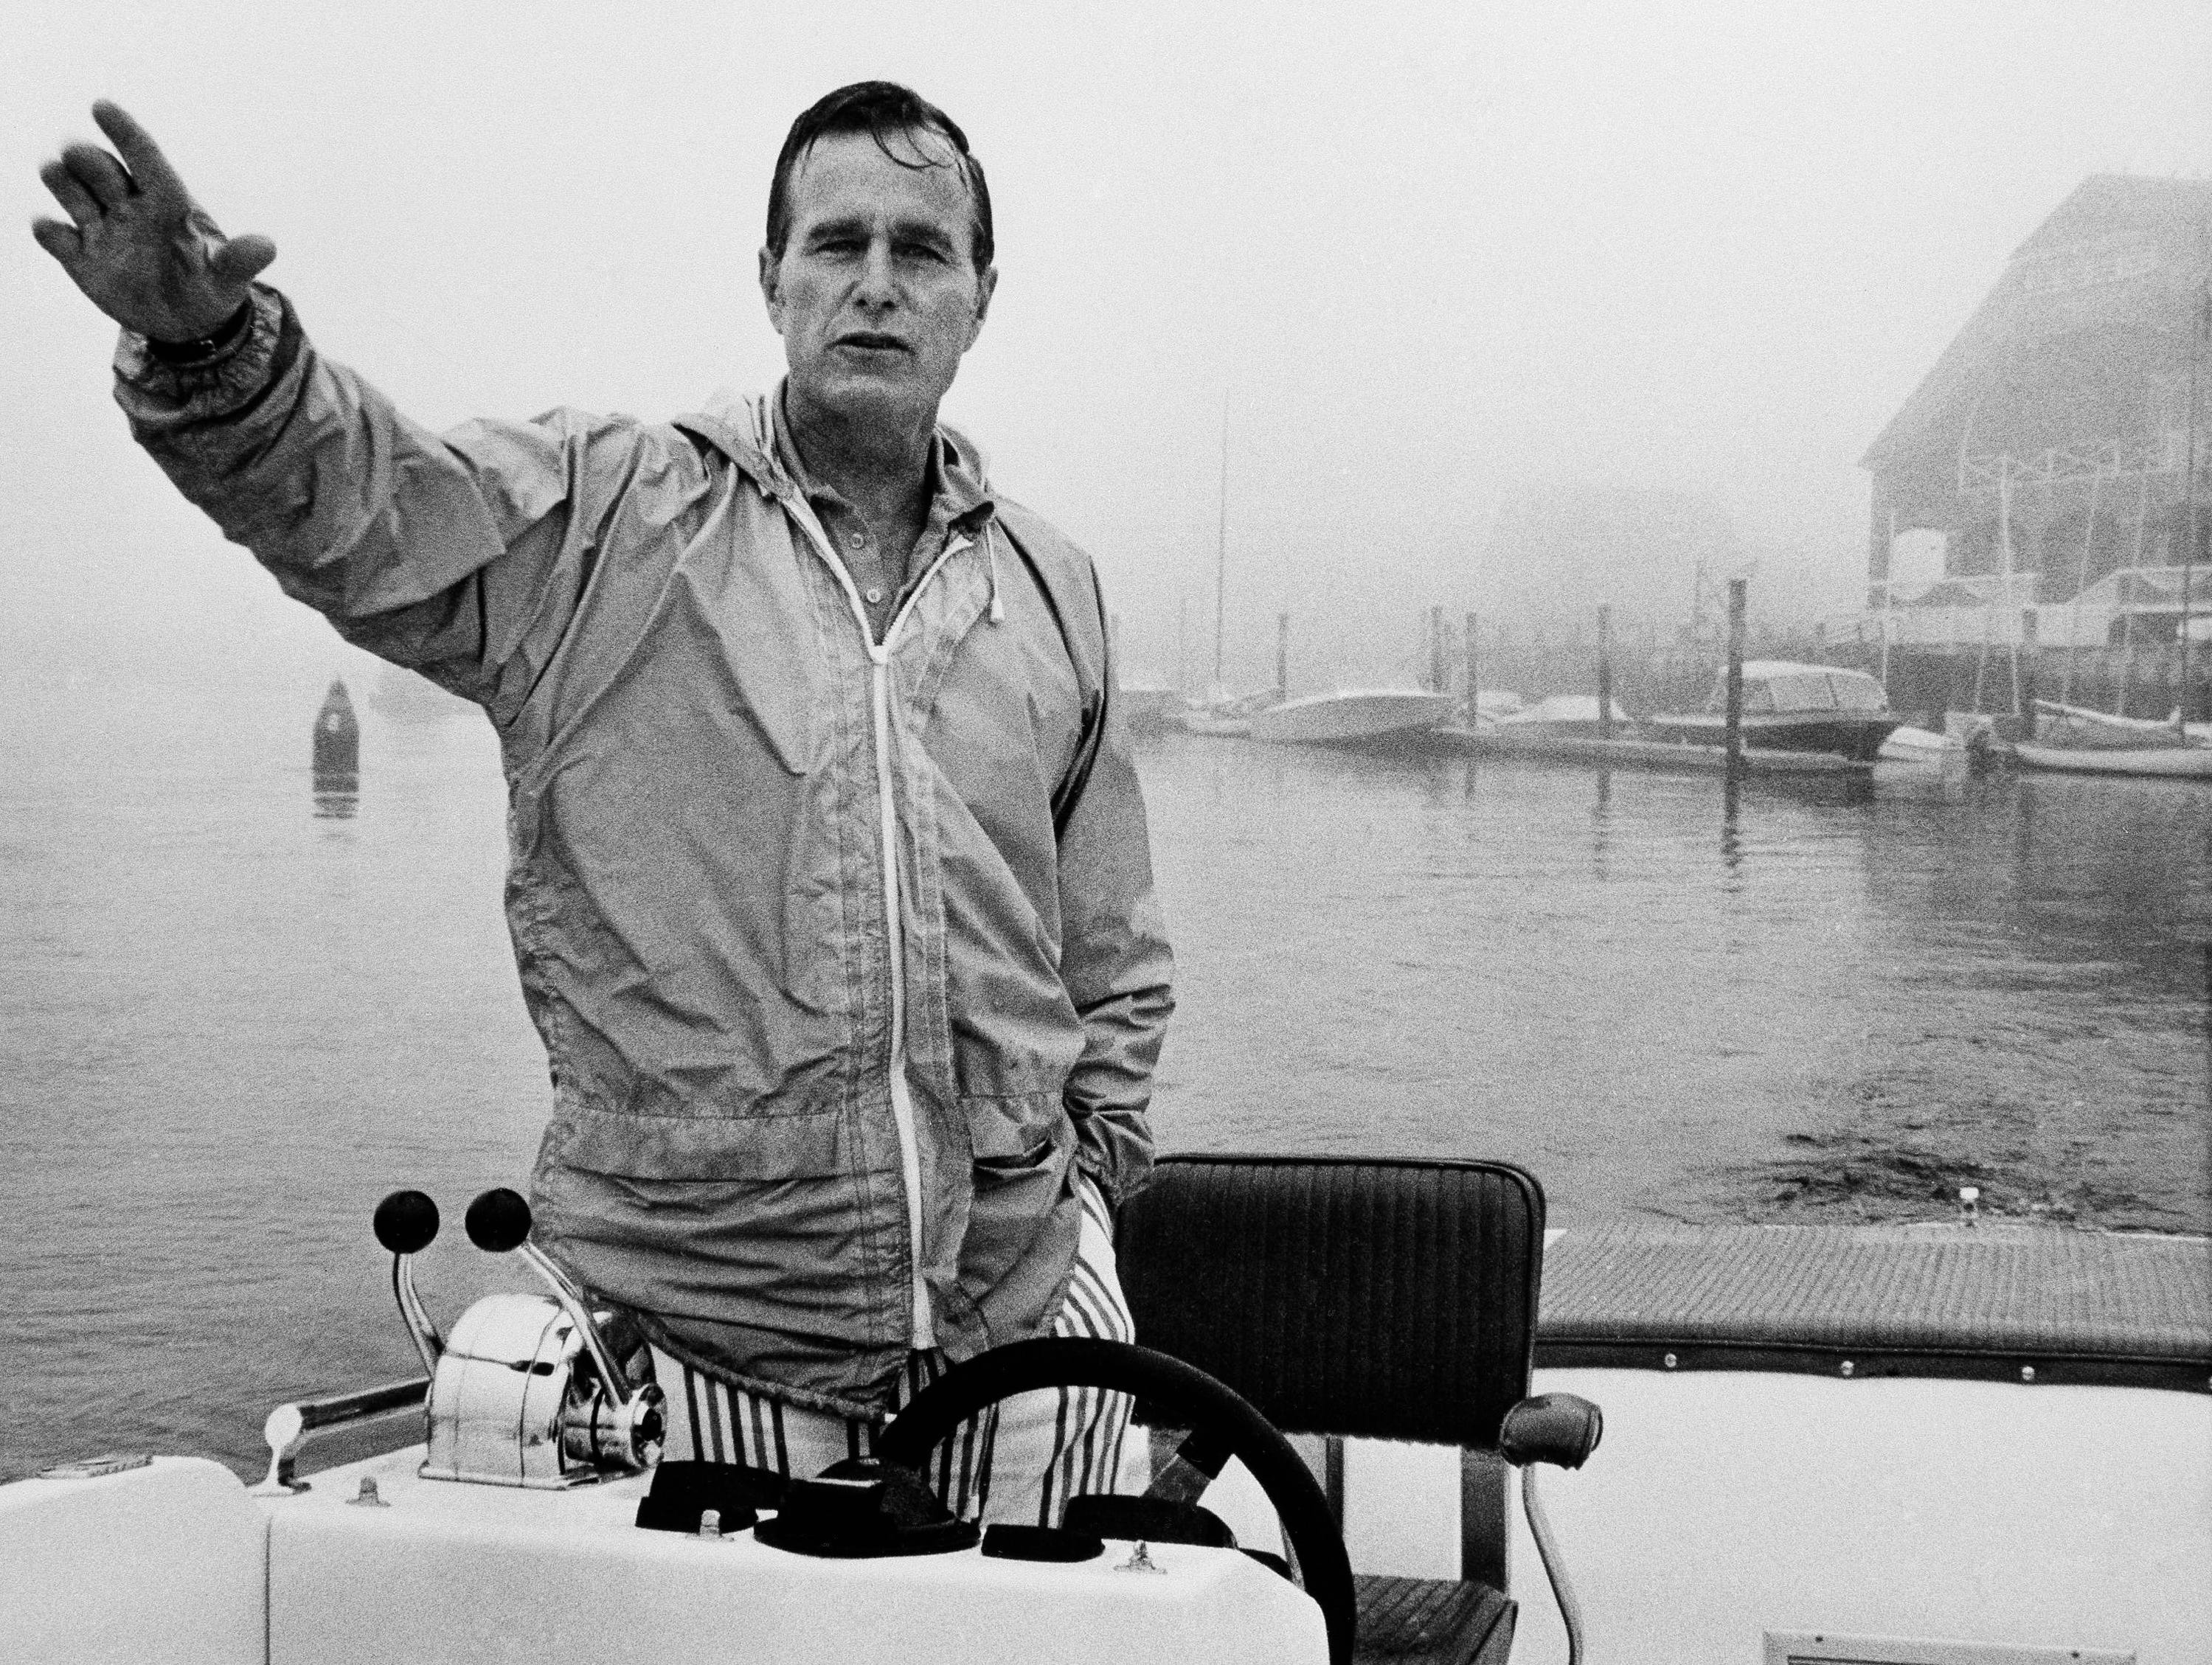 George H.W. Bush , National Chairman of the Republican Party, takes to his speed boat for a ride at  Kennebunkport, Maine on August 24, 1973 to outrun the pressures of Watergate and his party's political troubles. (AP Photo)